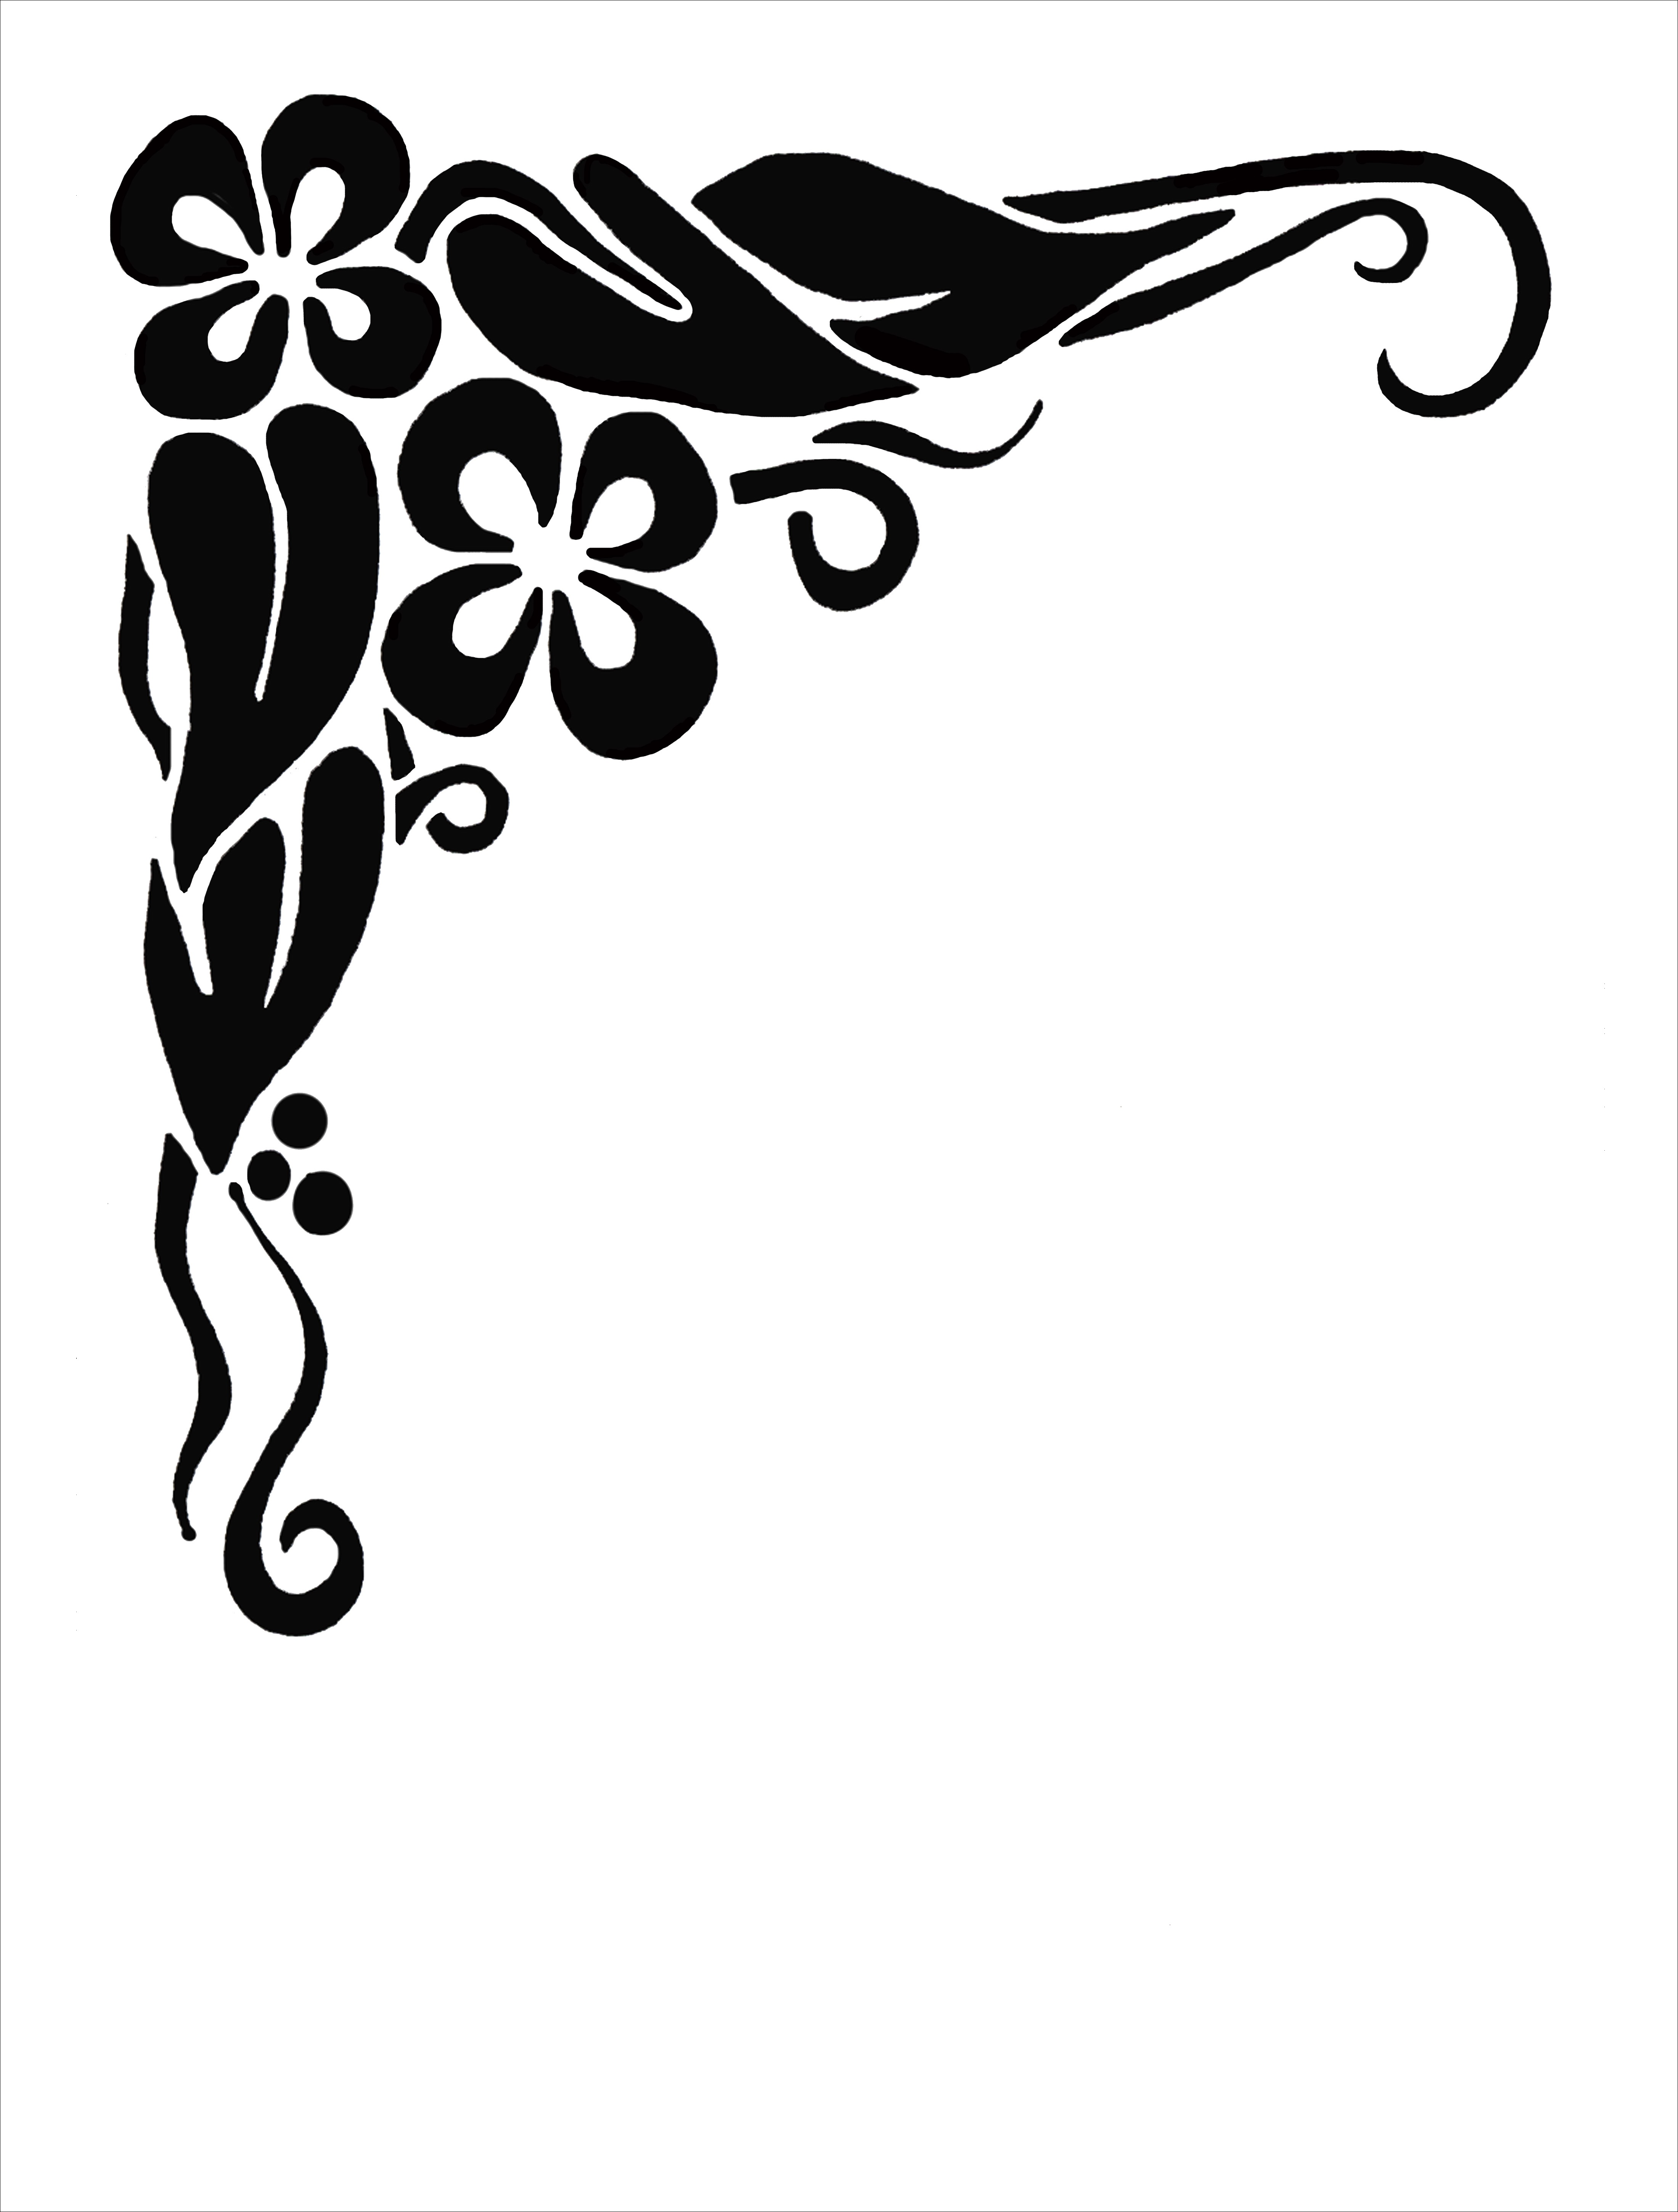 Plants decoration acents clipart black and white graphic library Fancy Corner Clipart | Free download best Fancy Corner Clipart on ... graphic library